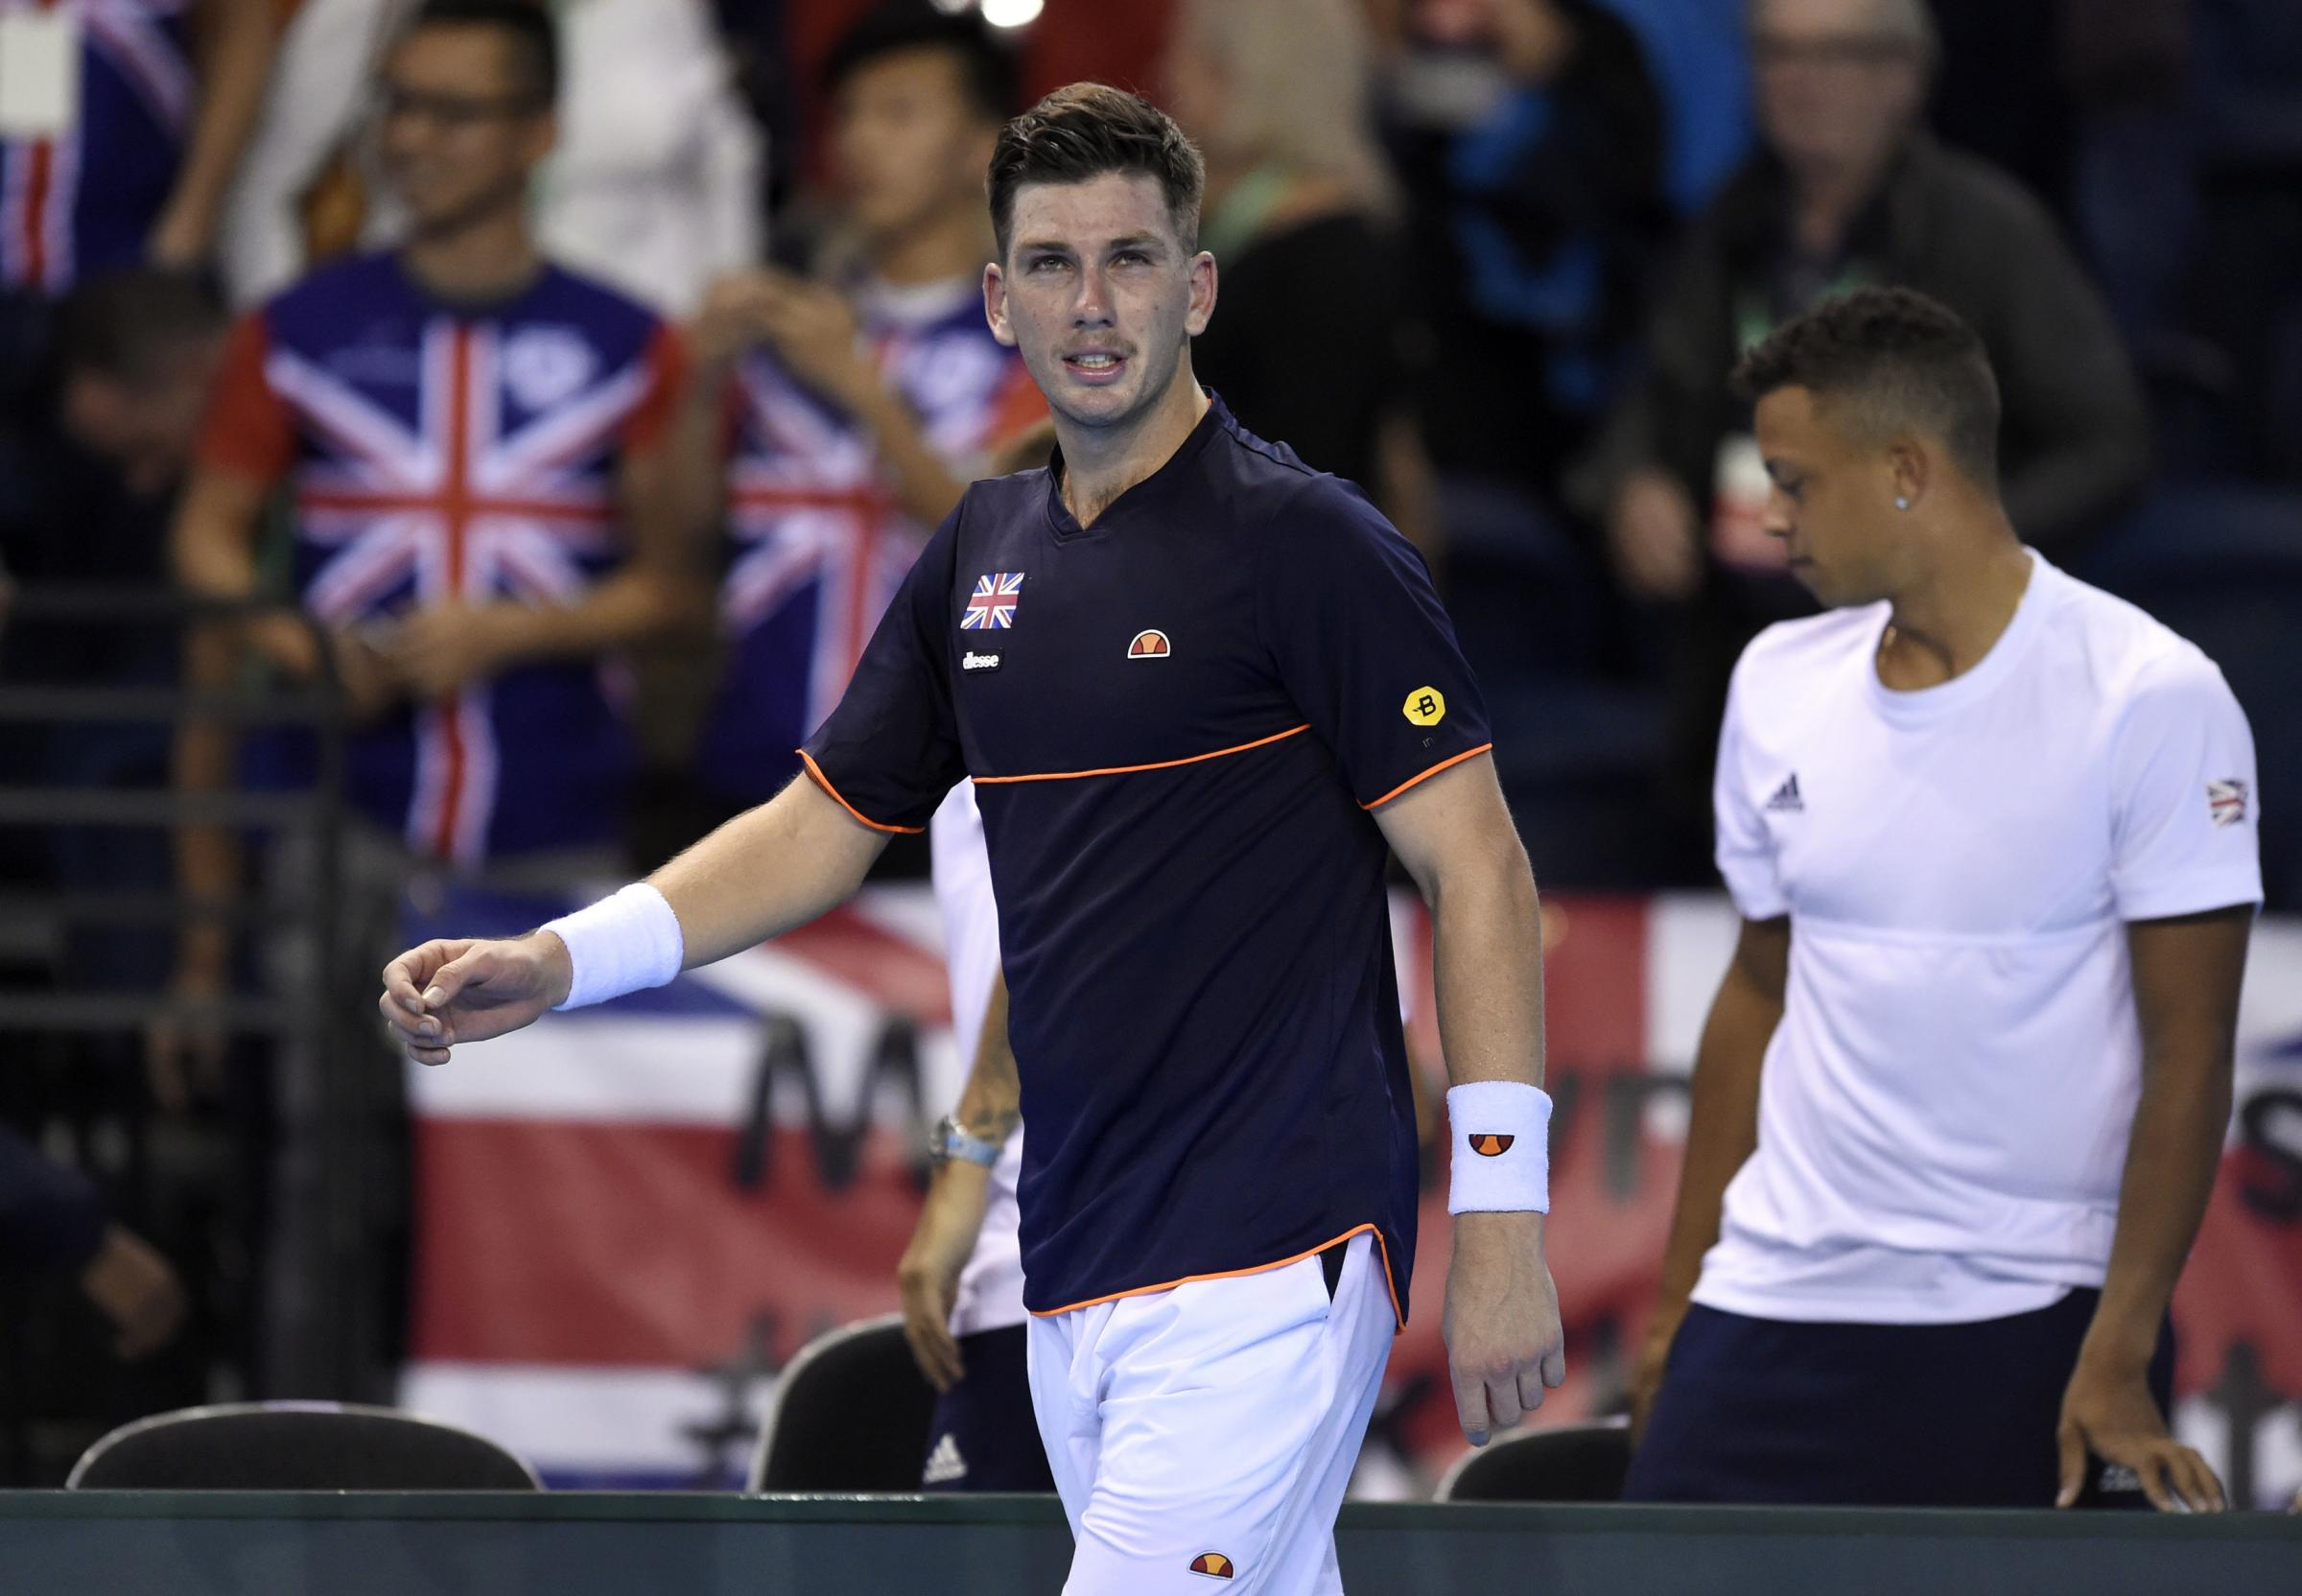 Great Britain's Cameron Norrie reacts after losing to Uzbekistan's Jurabek Karimov during the Davis Cup match at Emirates Arena, Glasgow. PRESS ASSOCIATION Photo. Picture date: Friday September 14, 2018. See PA story TENNIS Davis Cup. Photo credit